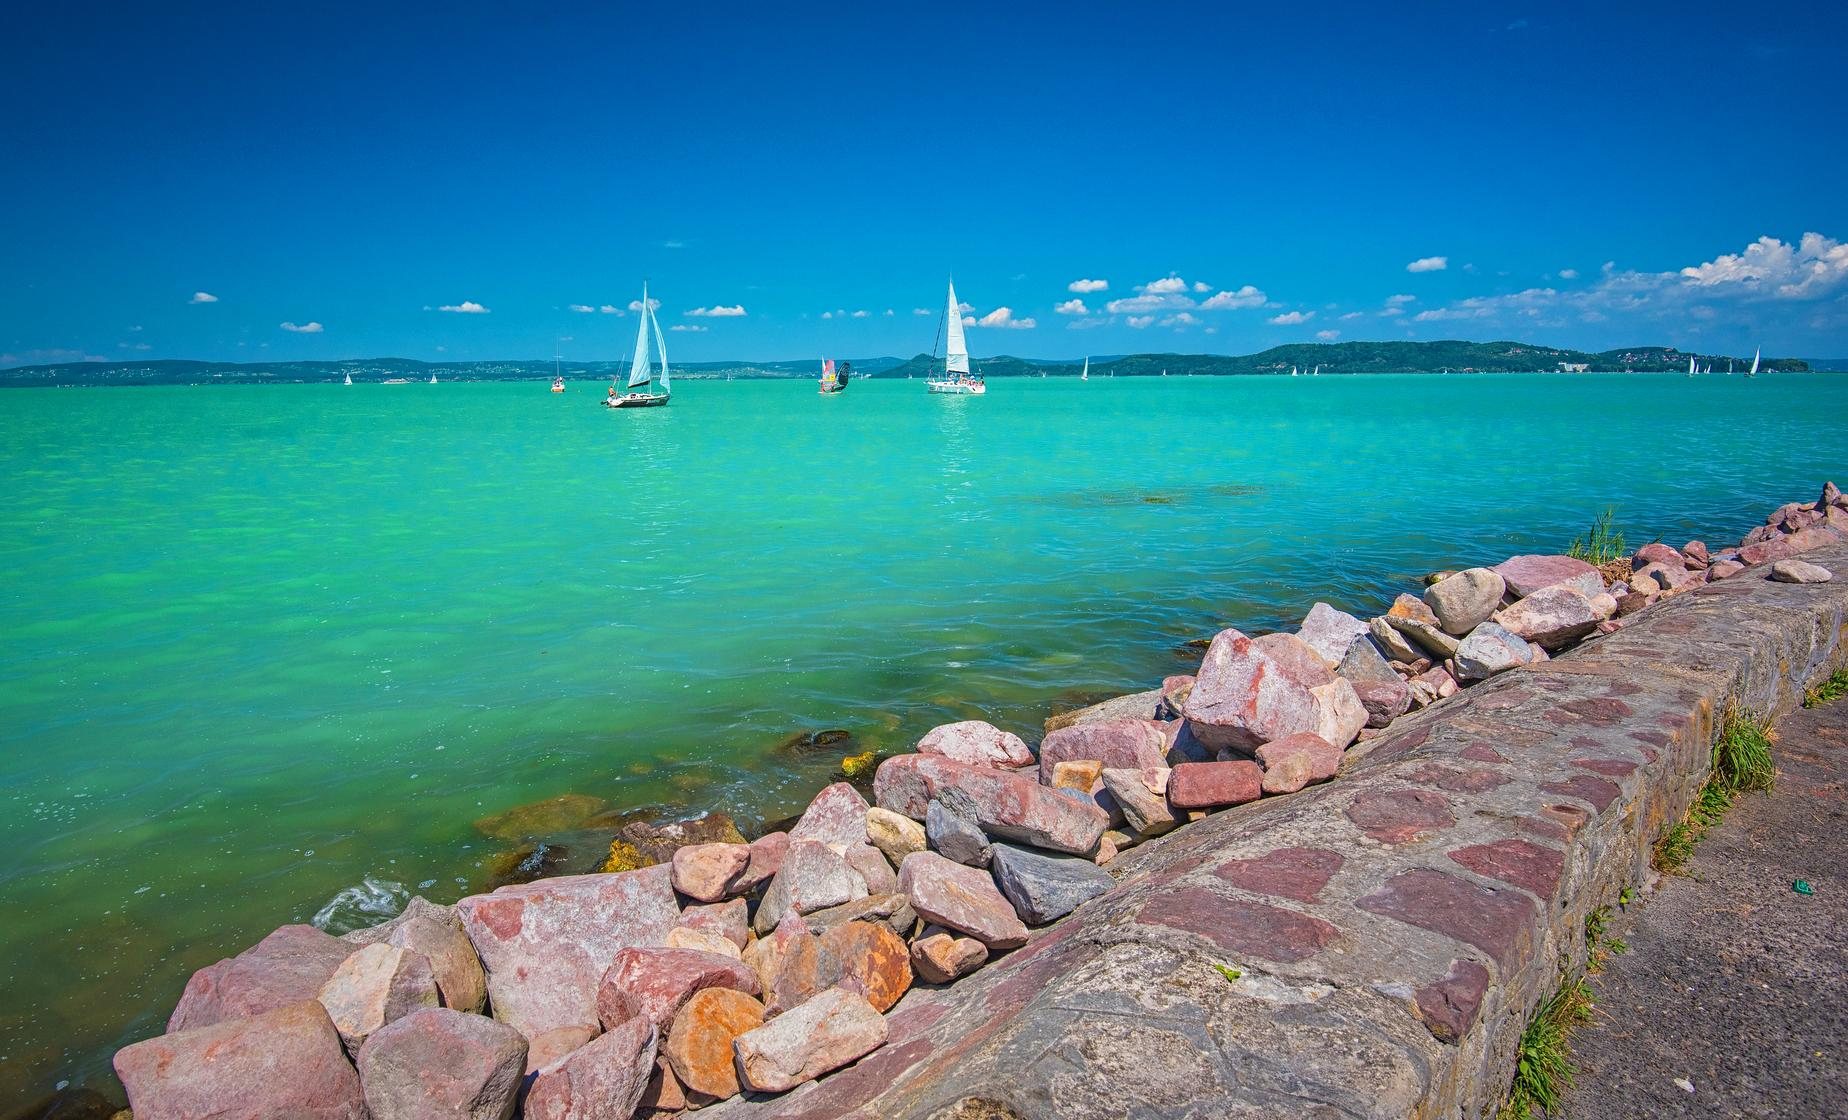 Venture to Lake Balaton